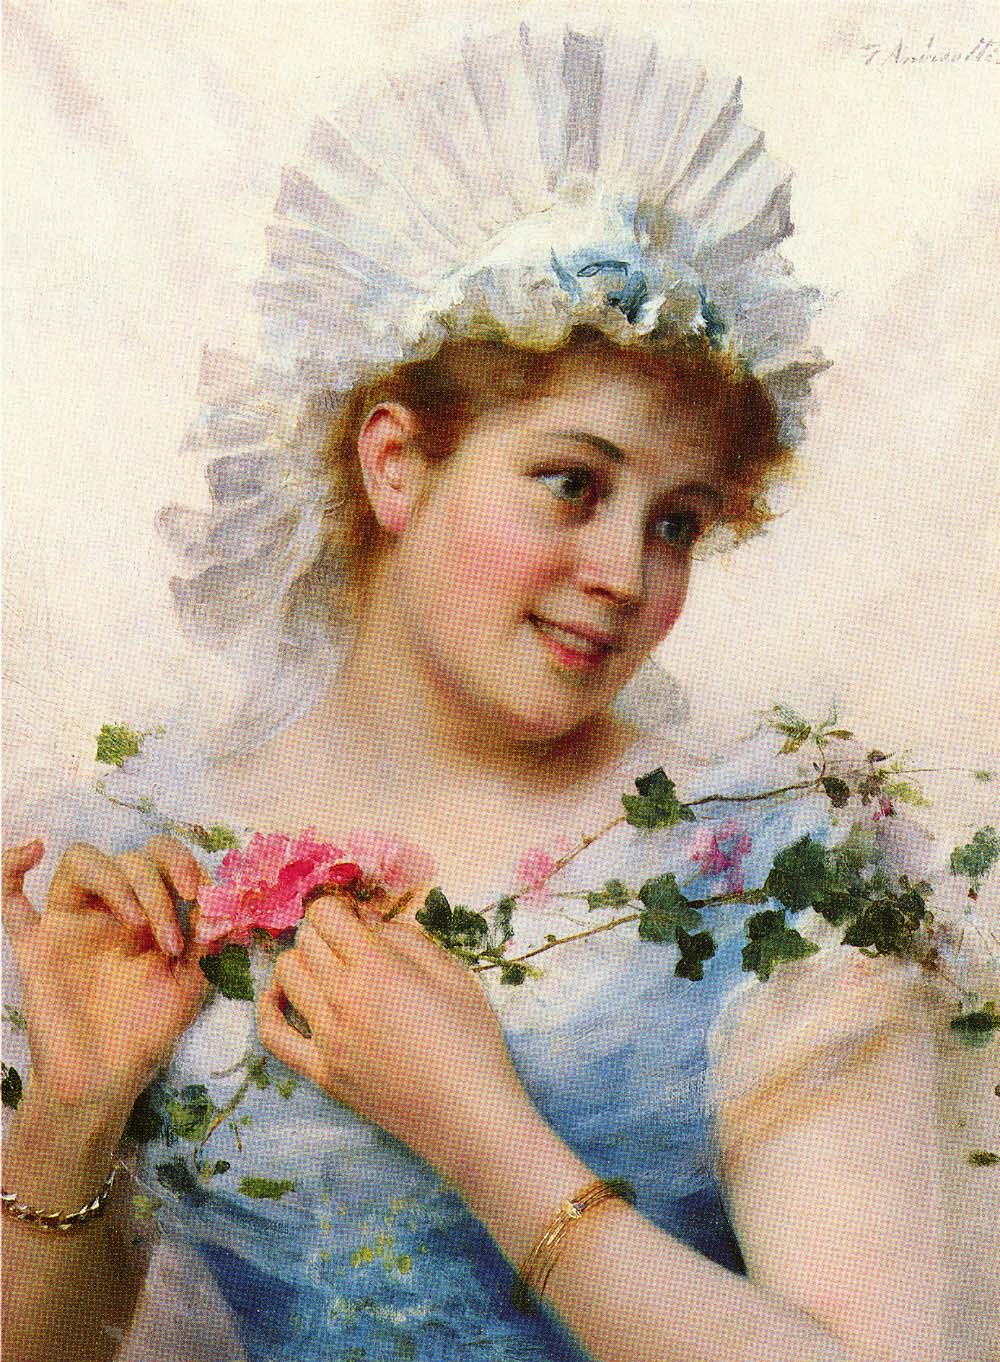 A Young Girl With Roses | Federico Andreotti | Oil Painting